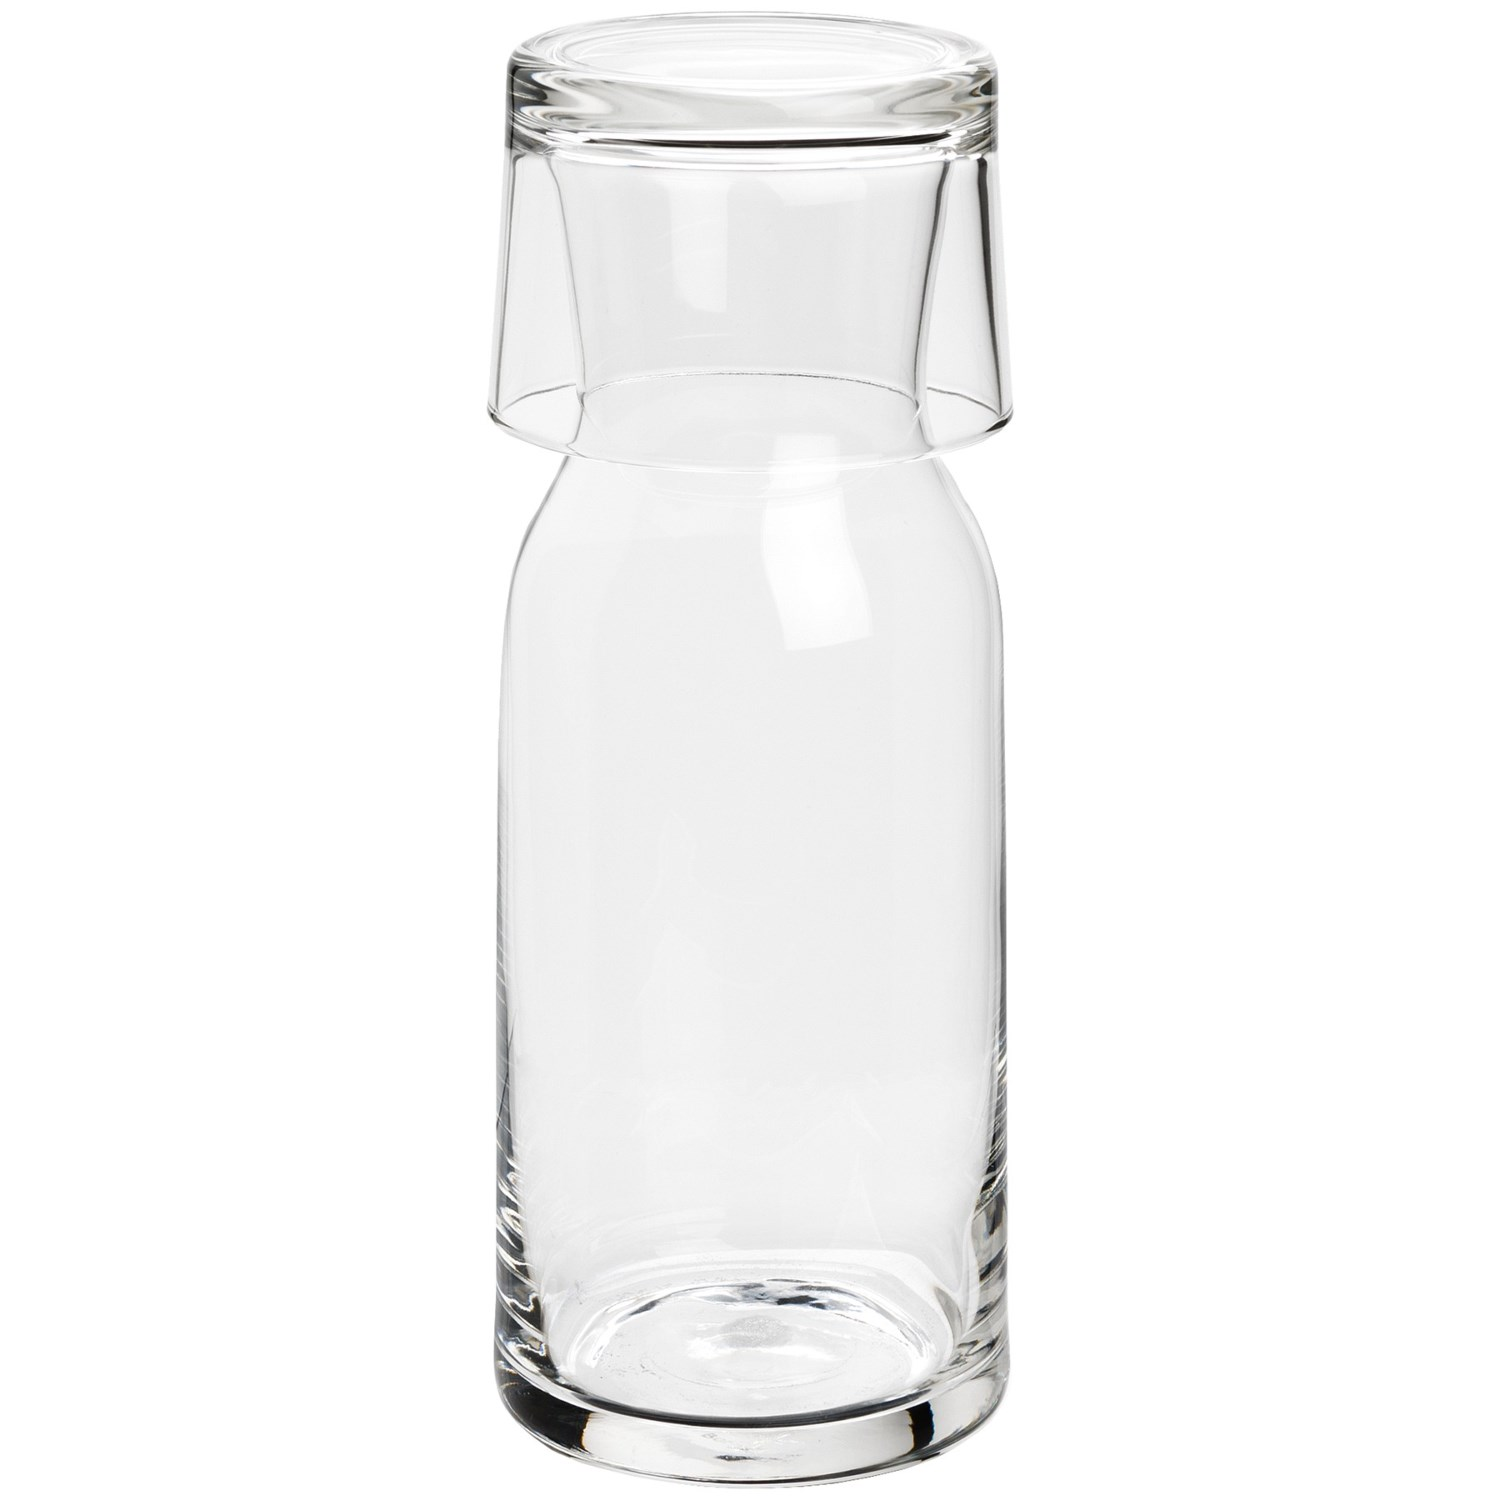 Bedside Water Carafe And Glass Bormioli Rocco Bedside Carafe 25 Fl Oz Glass Save 71